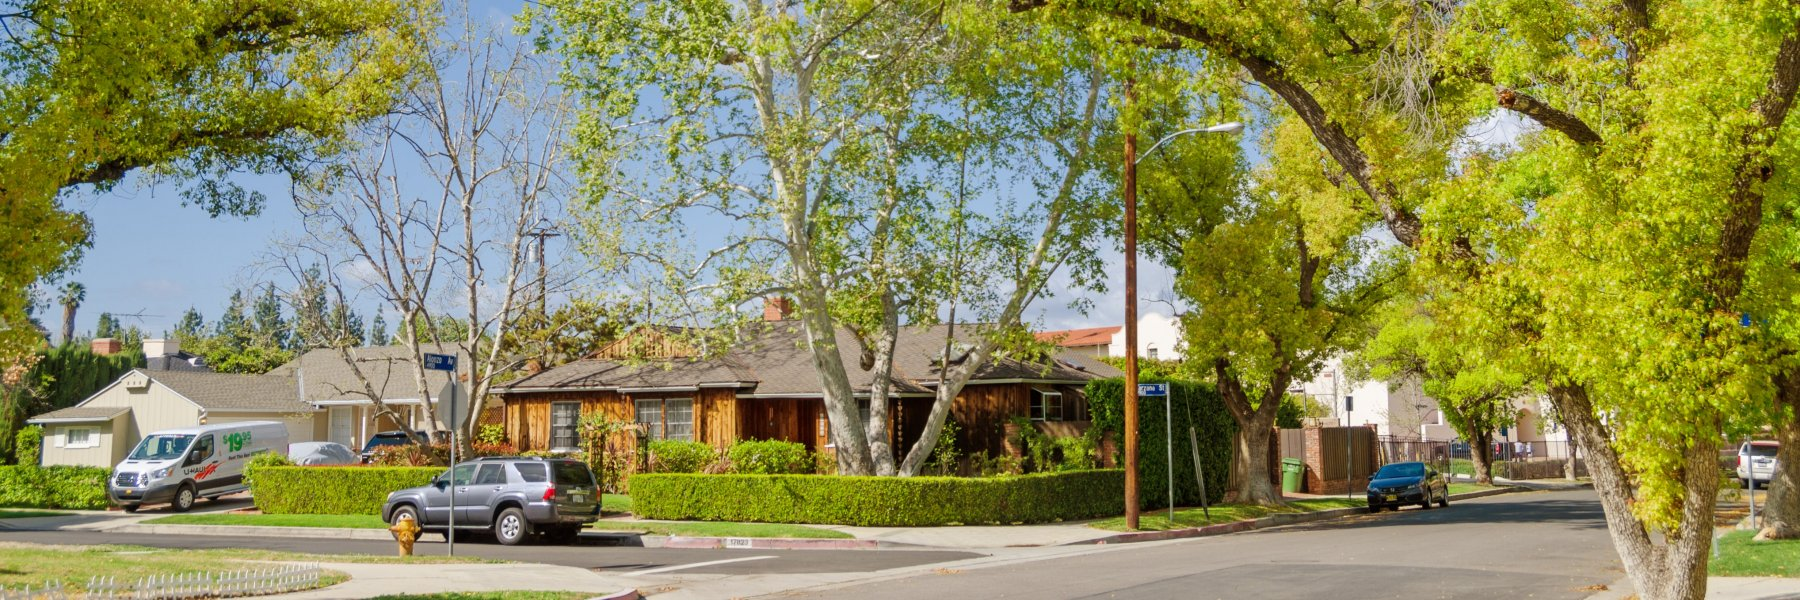 Lake Encino is a community of homes in Encino California